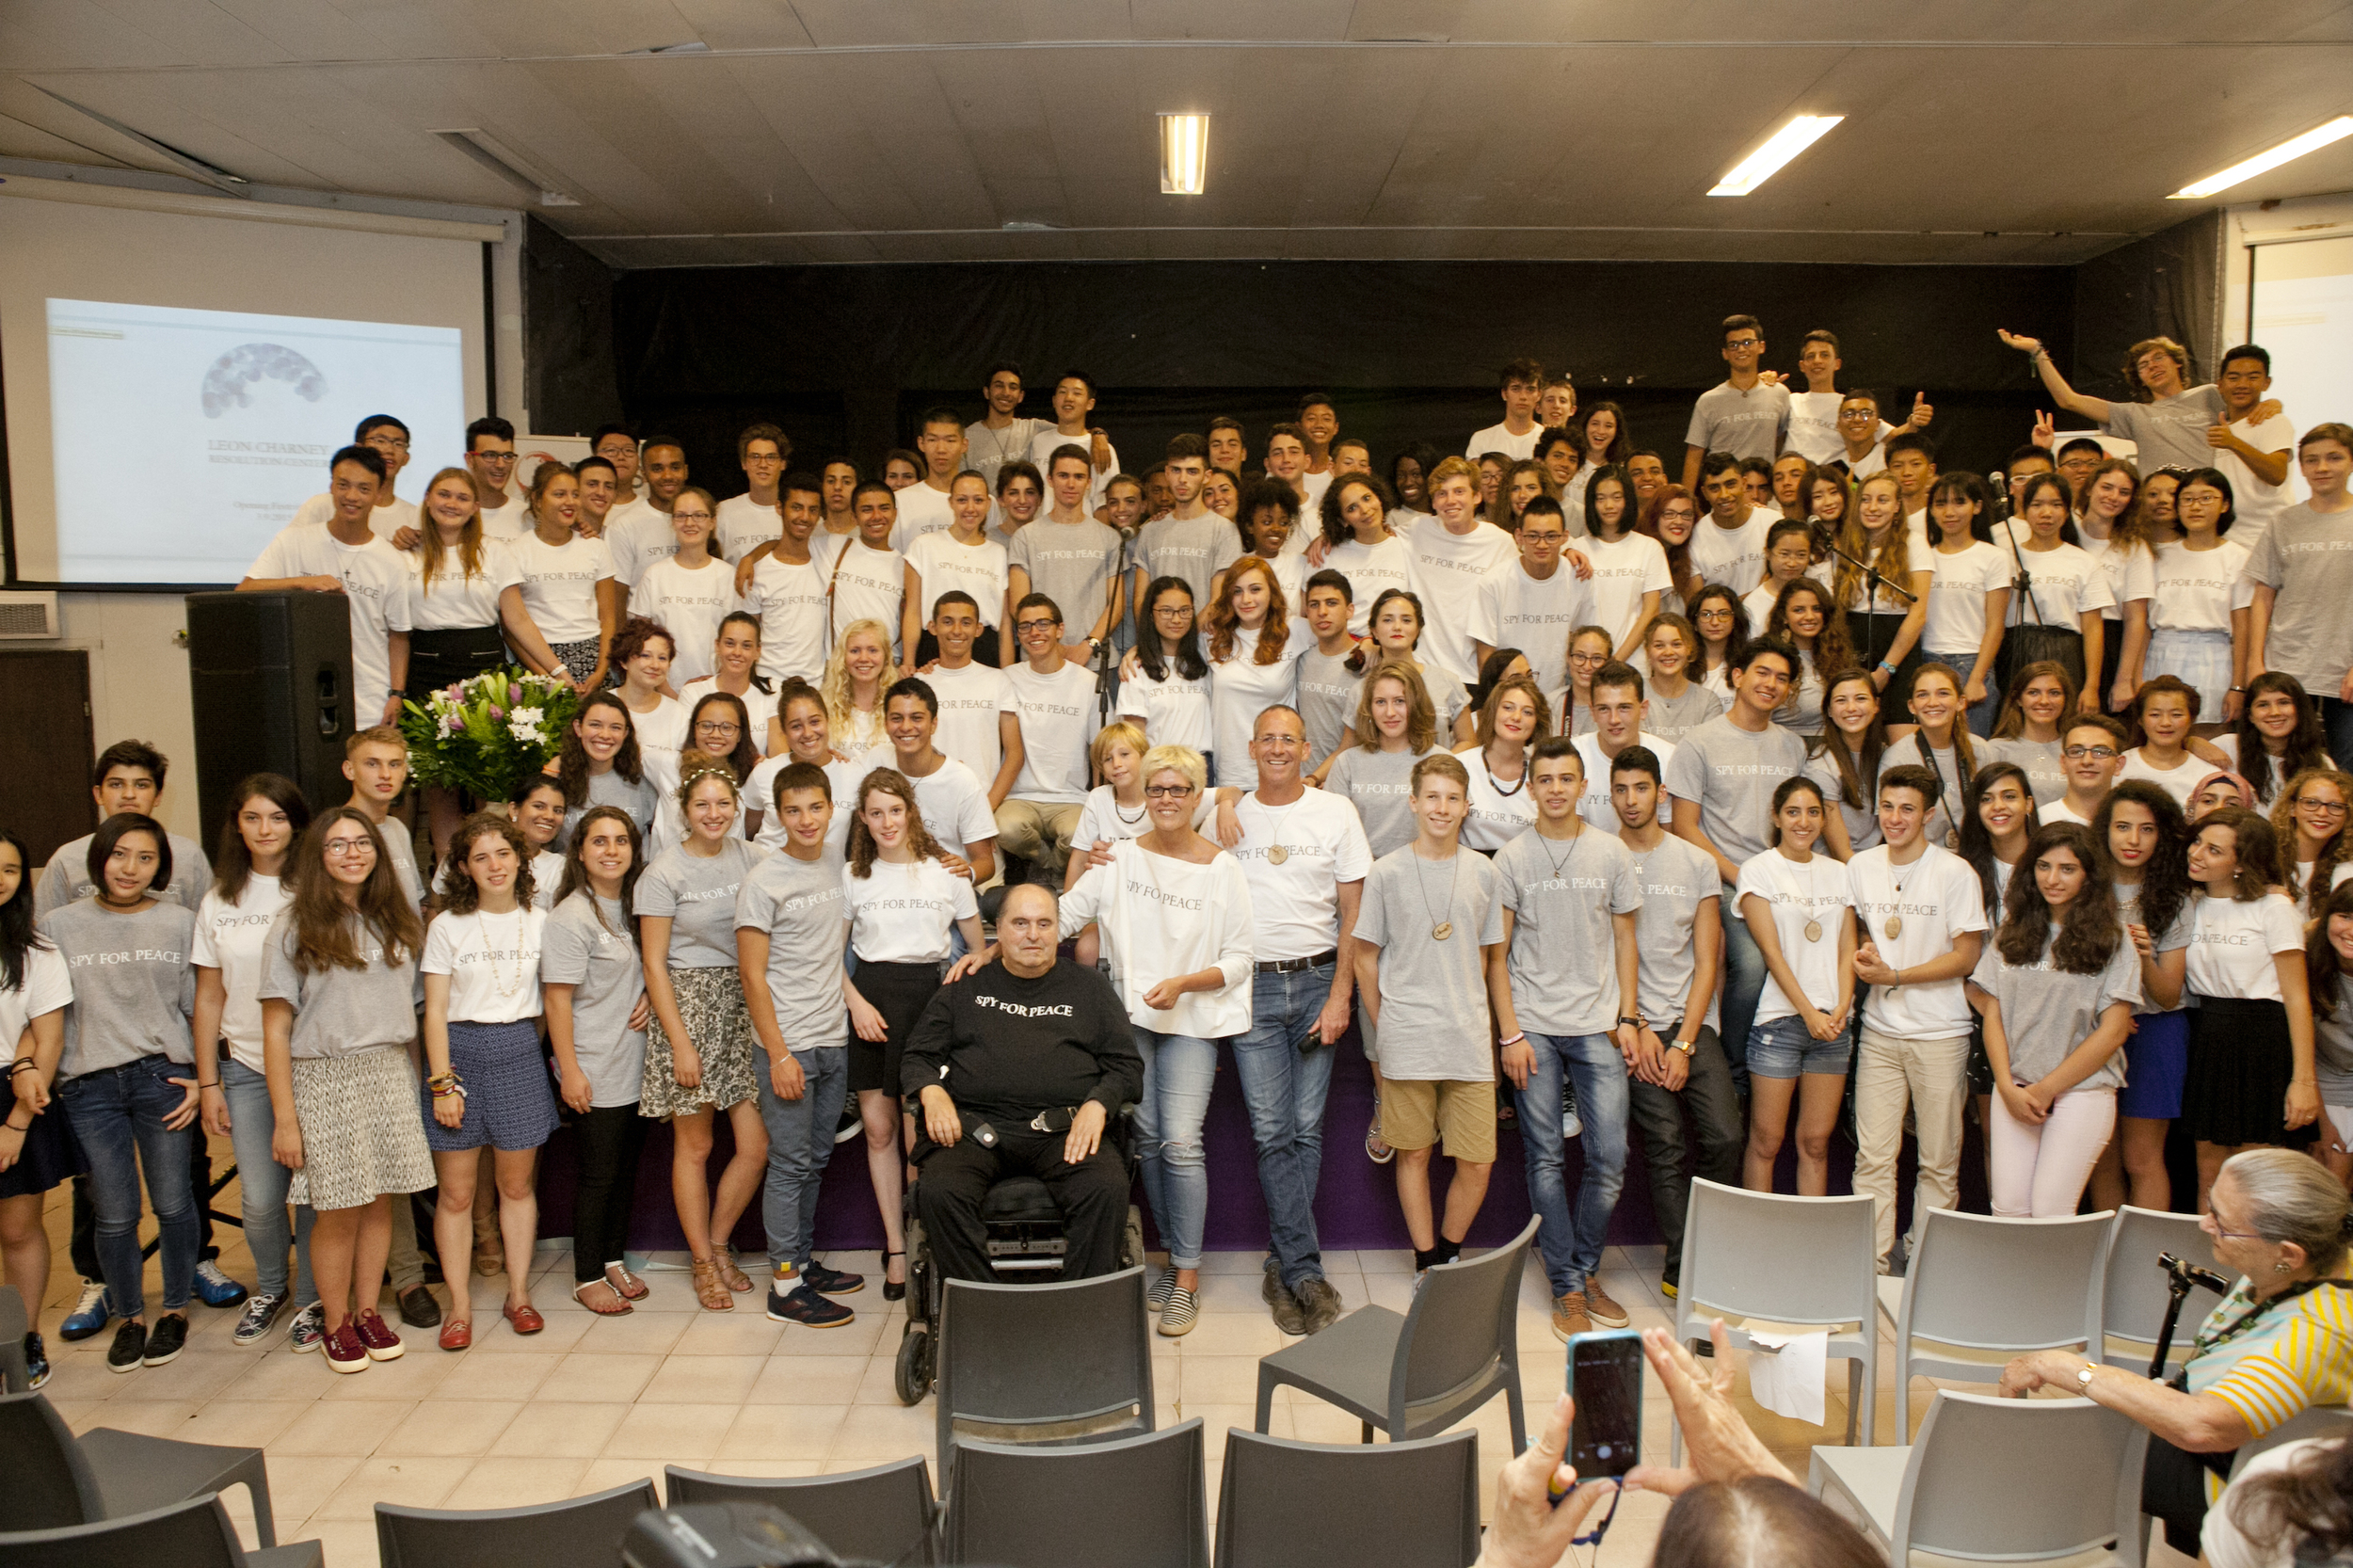 2015.09.03_Charney Resolution Center (483)_Leon and students group shot.JPG